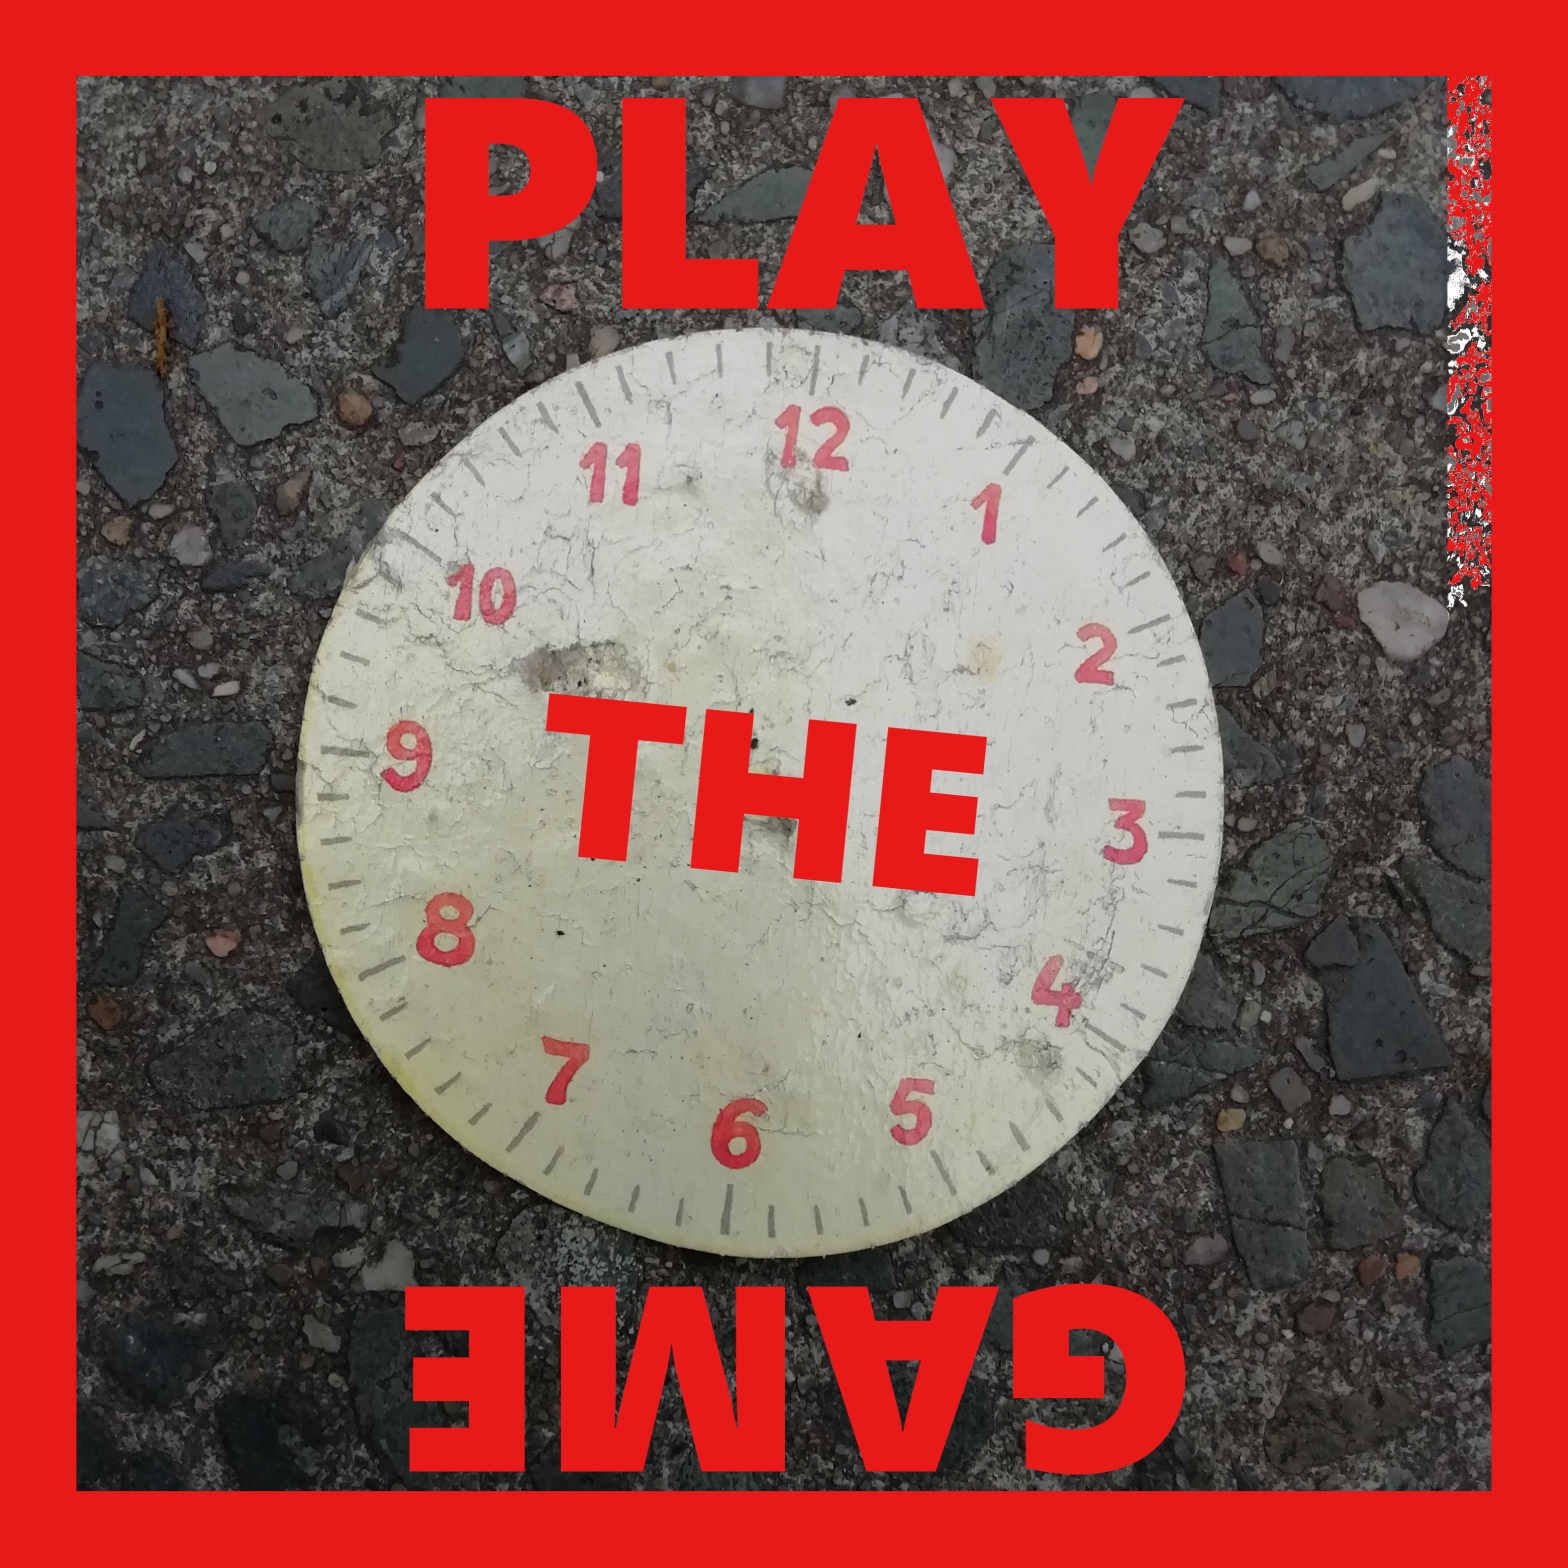 a photograph of a paper clock without hands on an asphalt pavement. The text reads 'Play the game' in bright red capitals.